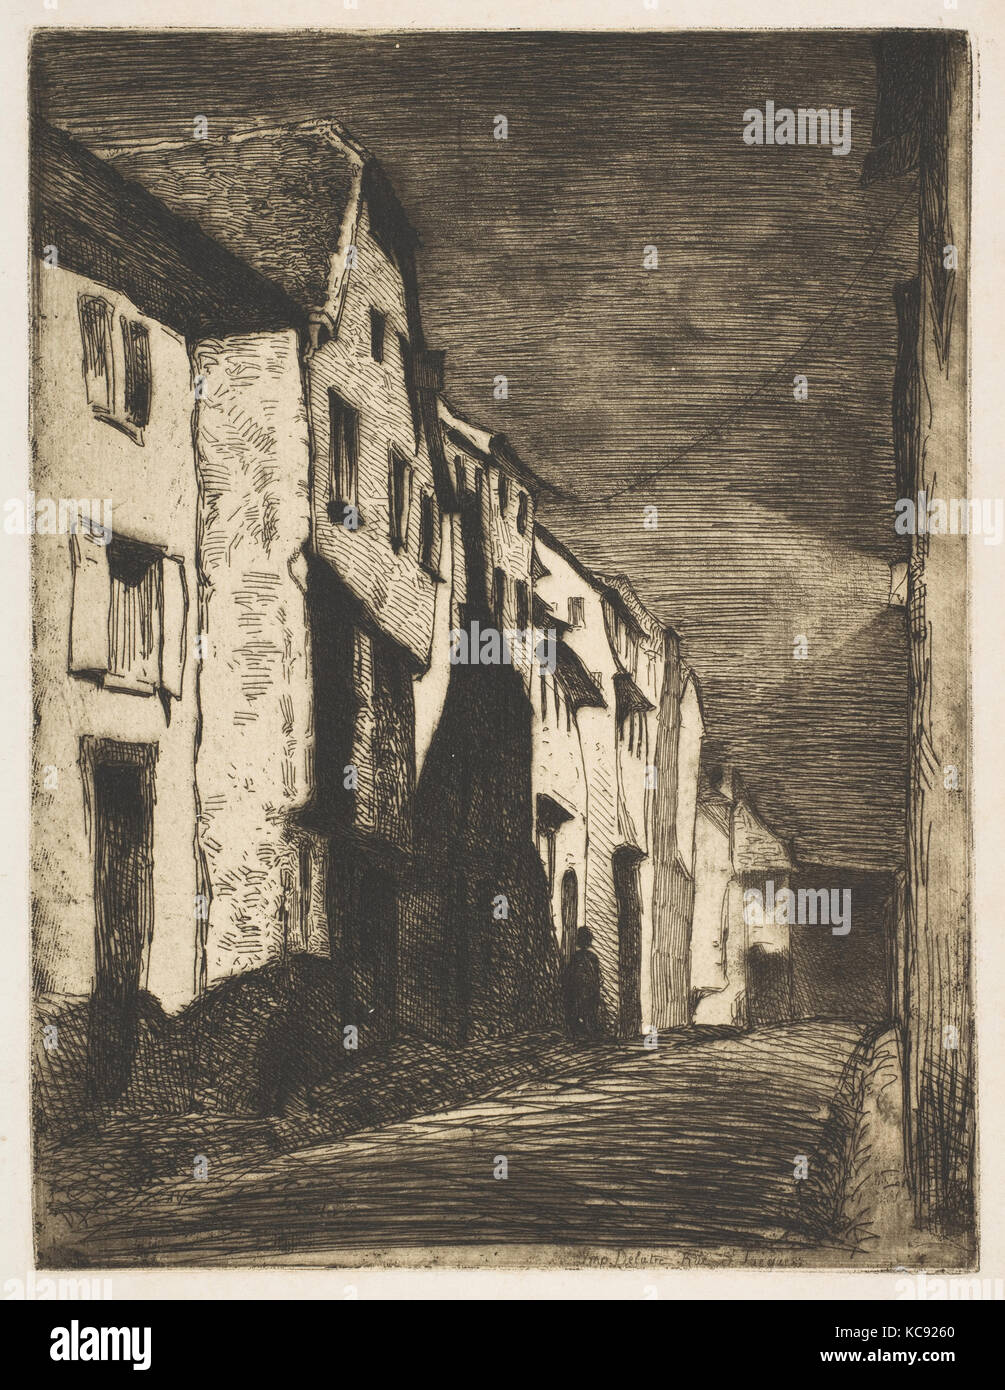 Street at Saverne, 1858, Etching and open bite or sandpaper ground; third  state of four (Glasgow); printed in black ink on ivory